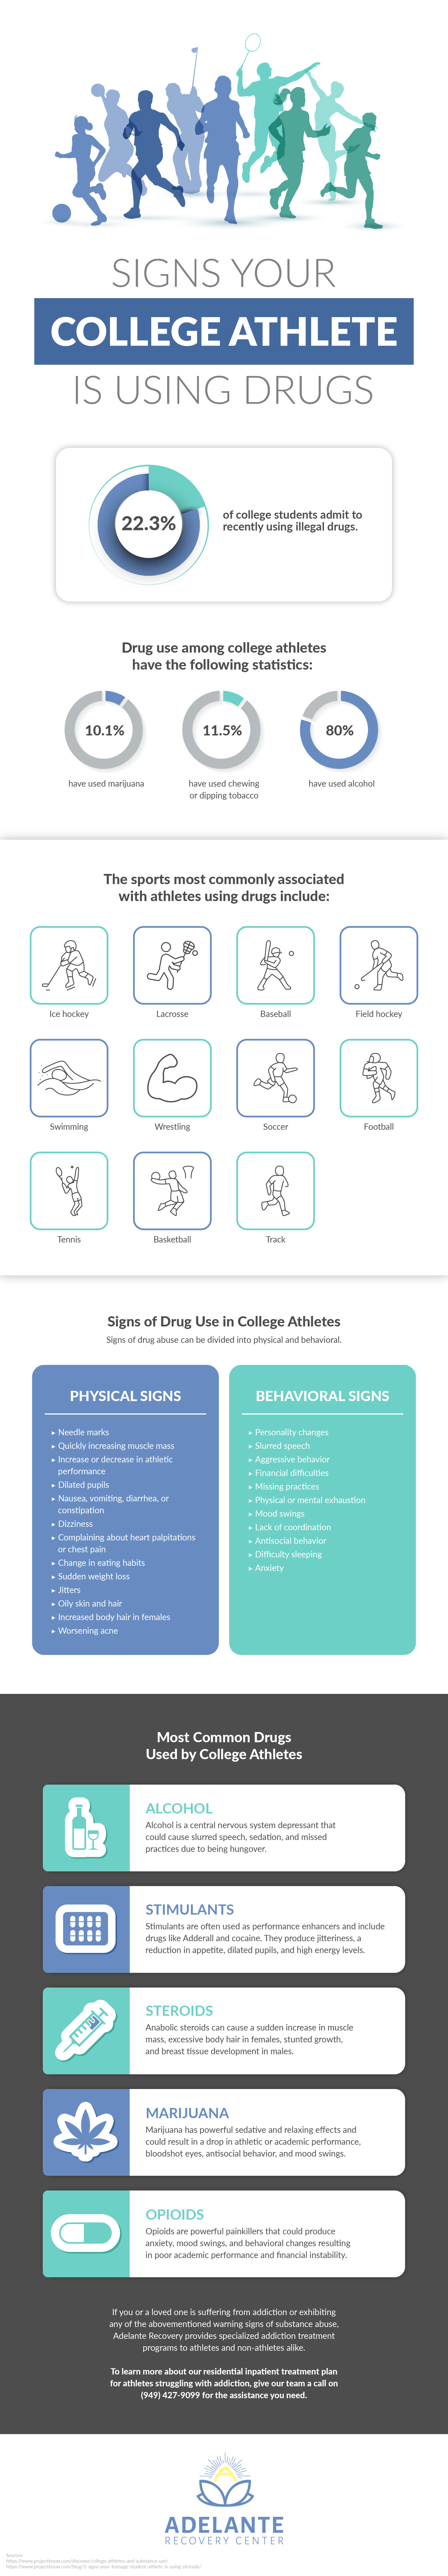 Signs Your College Athlete Is Using Drugs Infographic